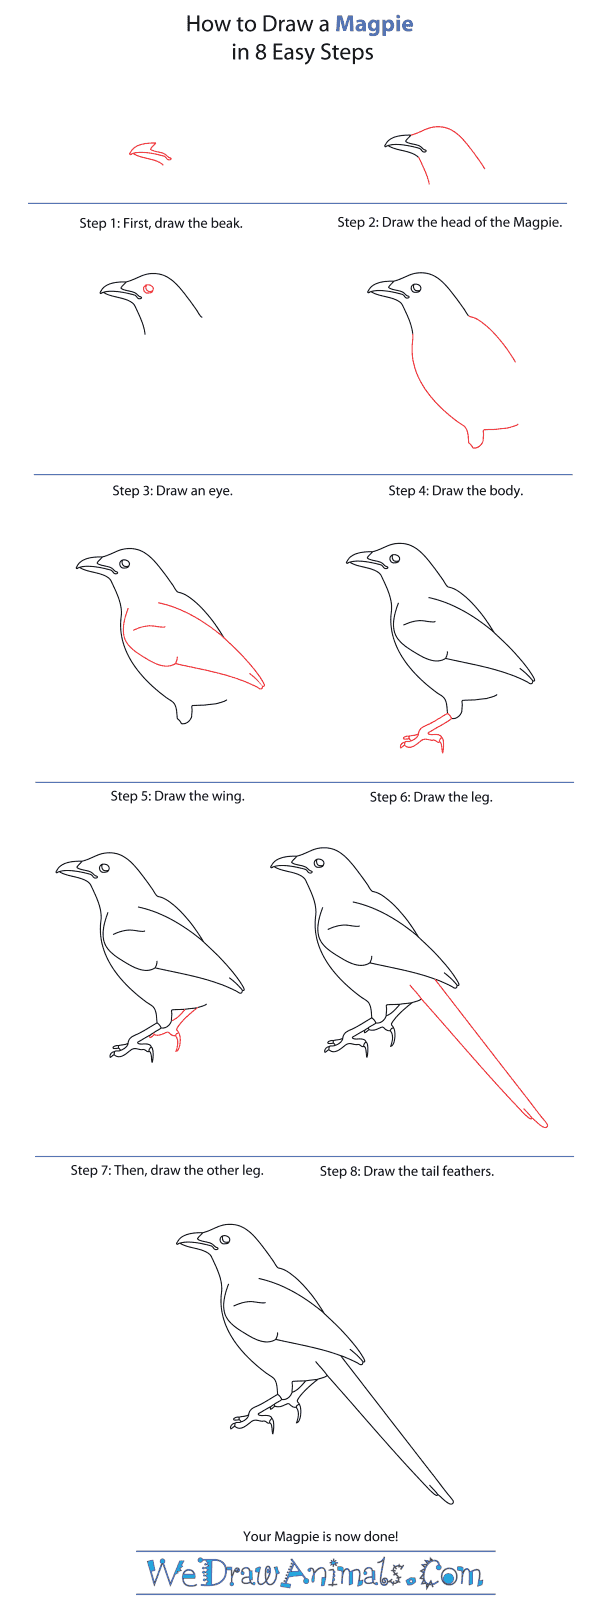 How to Draw a Magpie - Step-By-Step Tutorial